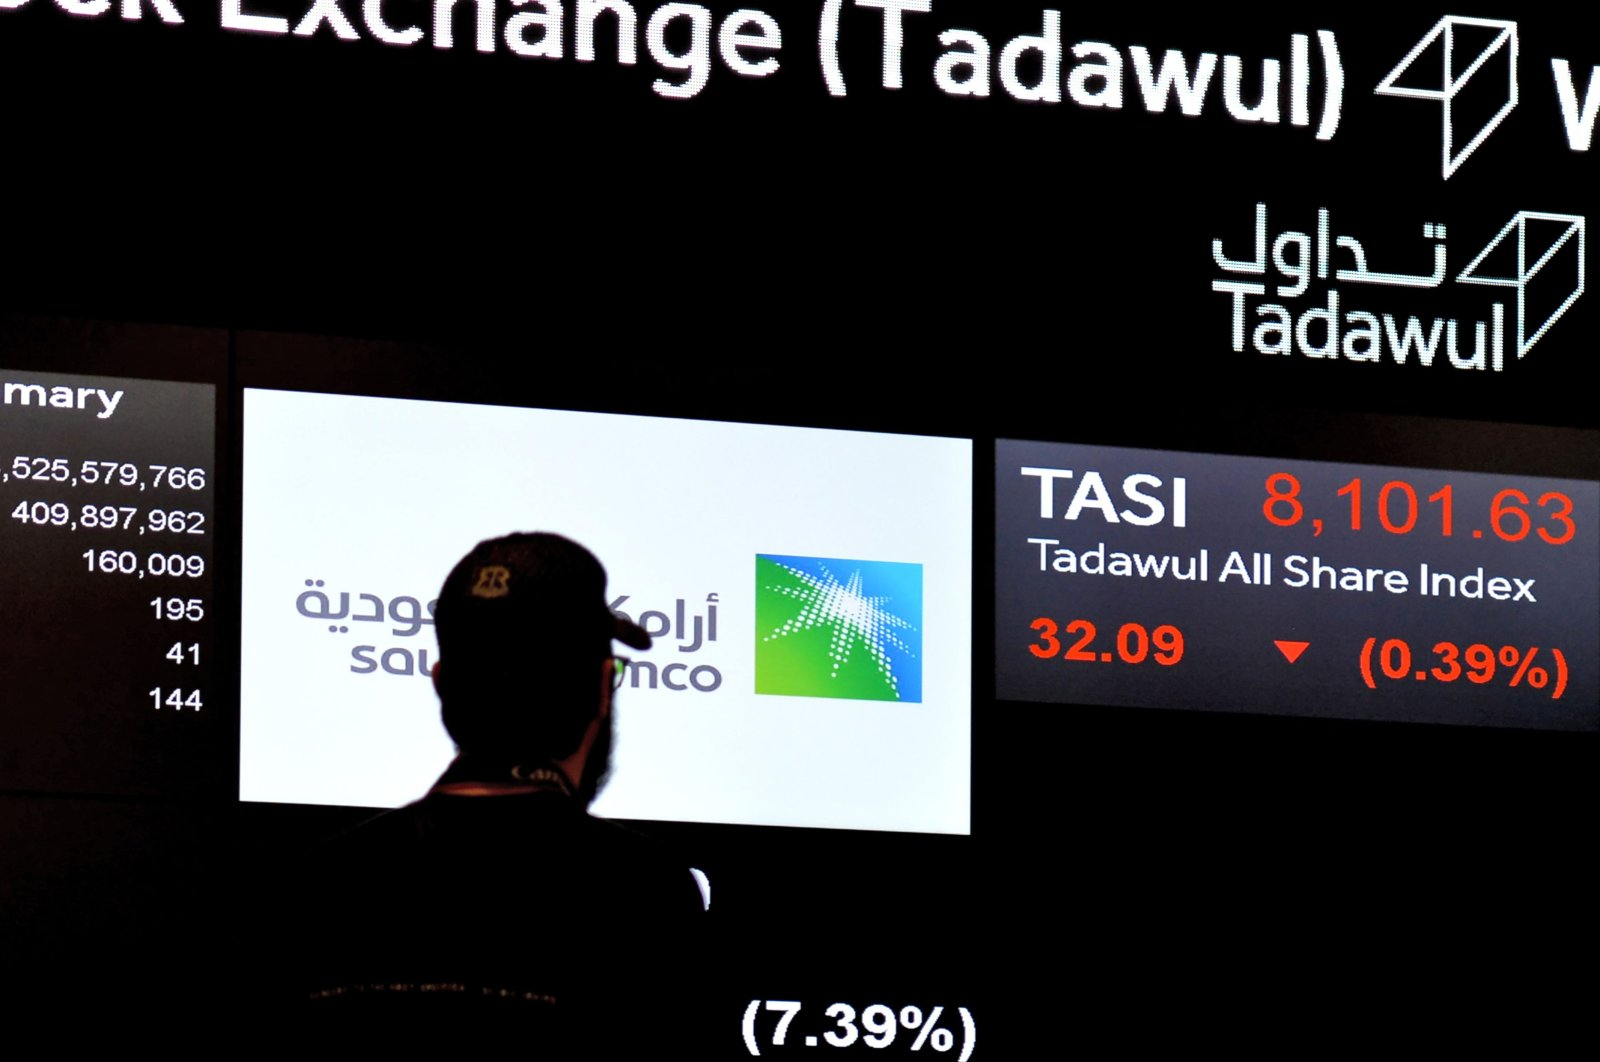 A view of the exchange board at the Stock Exchange Market (Tadawul) bourse in Riyadh displaying Aramco shares, Dec. 12, 2019. (AFP Photo)